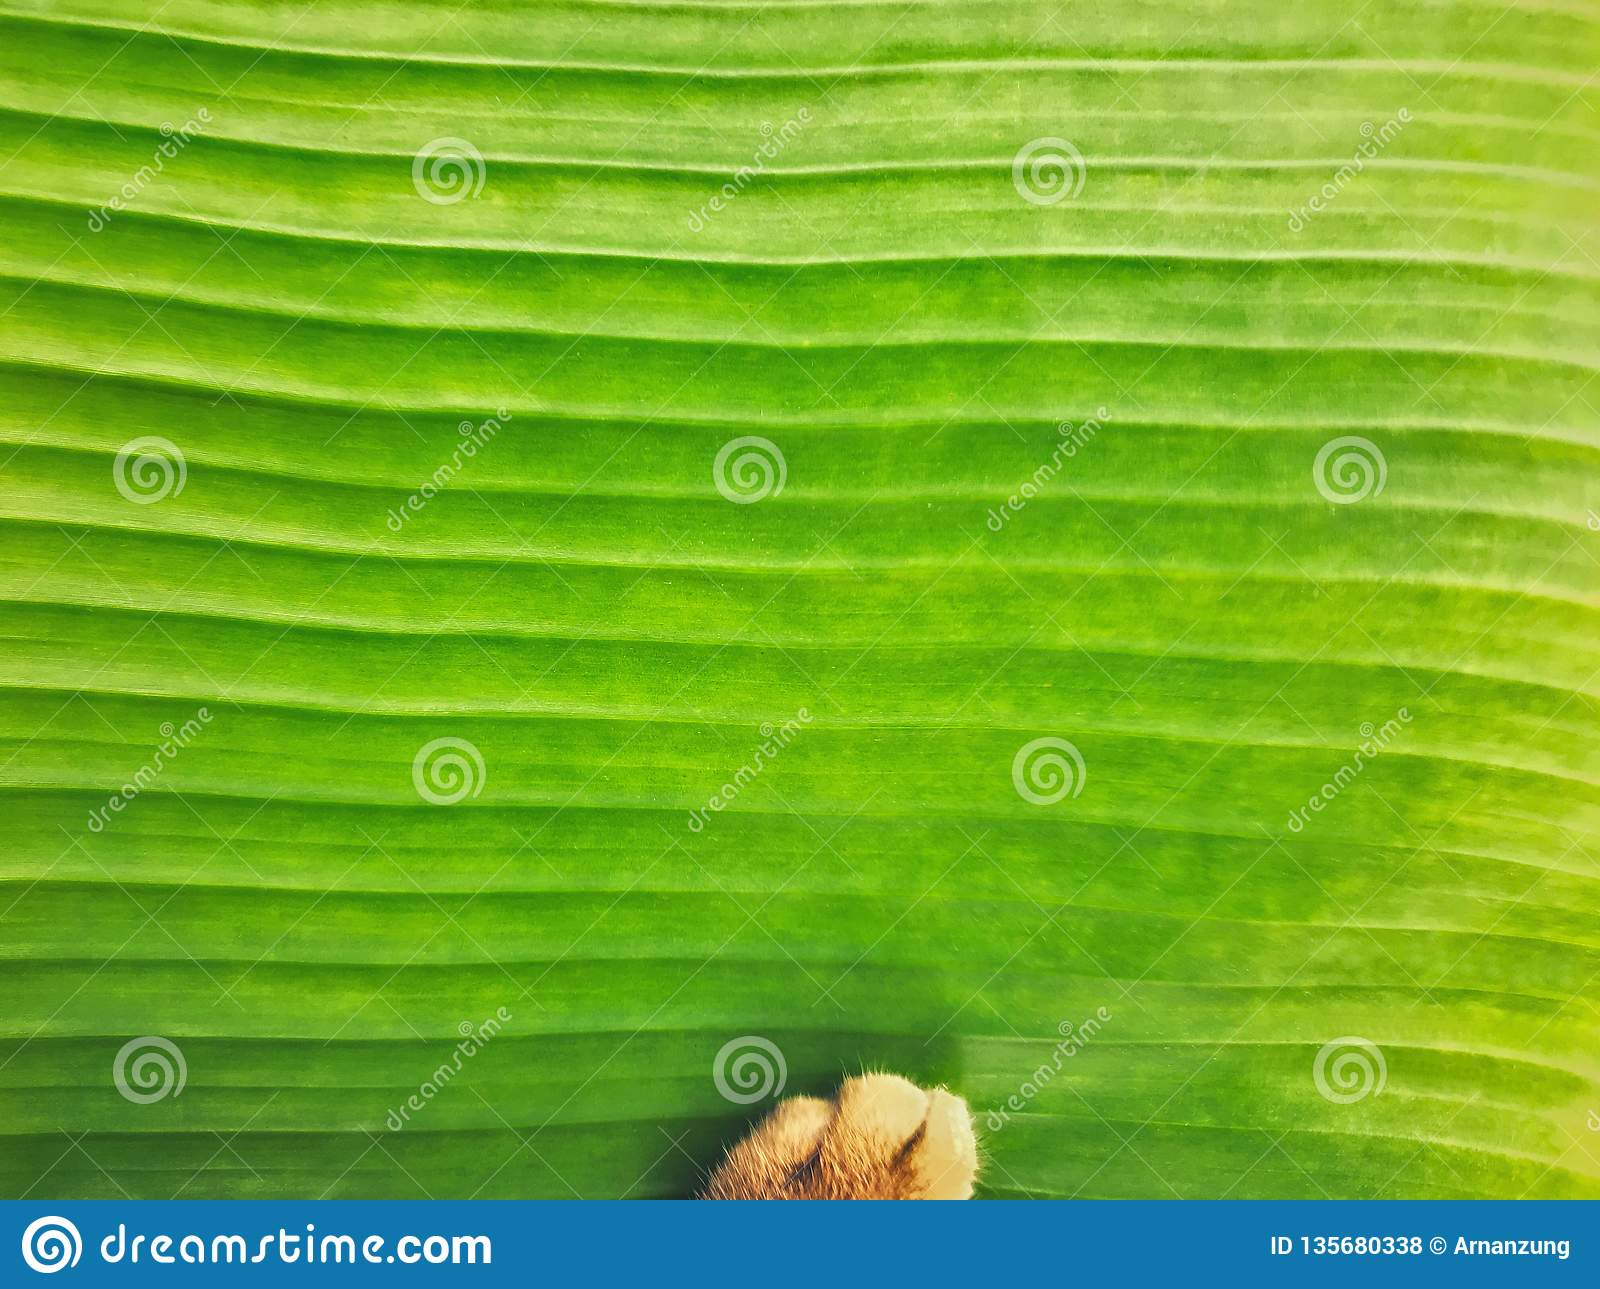 Fresh light green banana leaf texture close up background with cat paw soft focus.